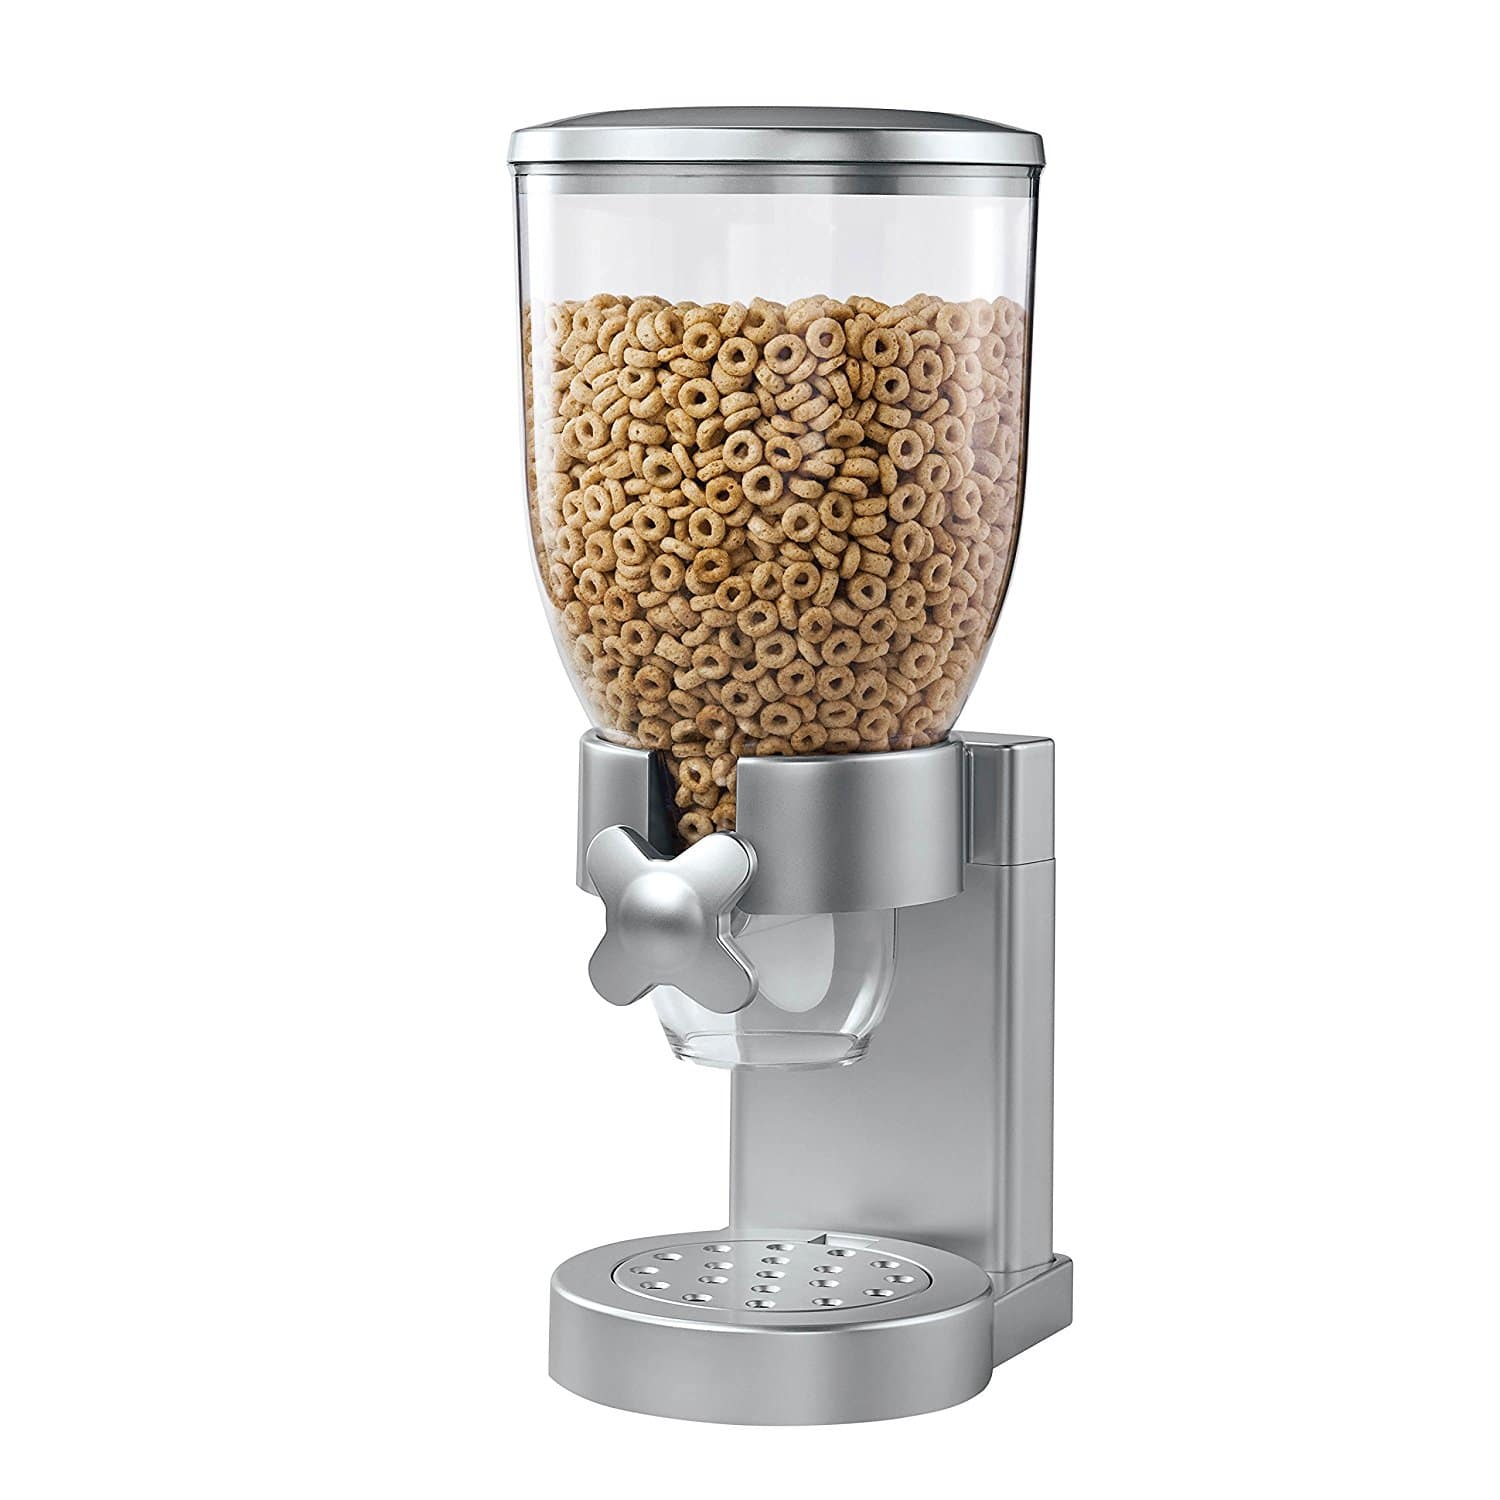 Zevro Indispensable Dry Food Dispenser, Single Control, Silver Prime $9.34